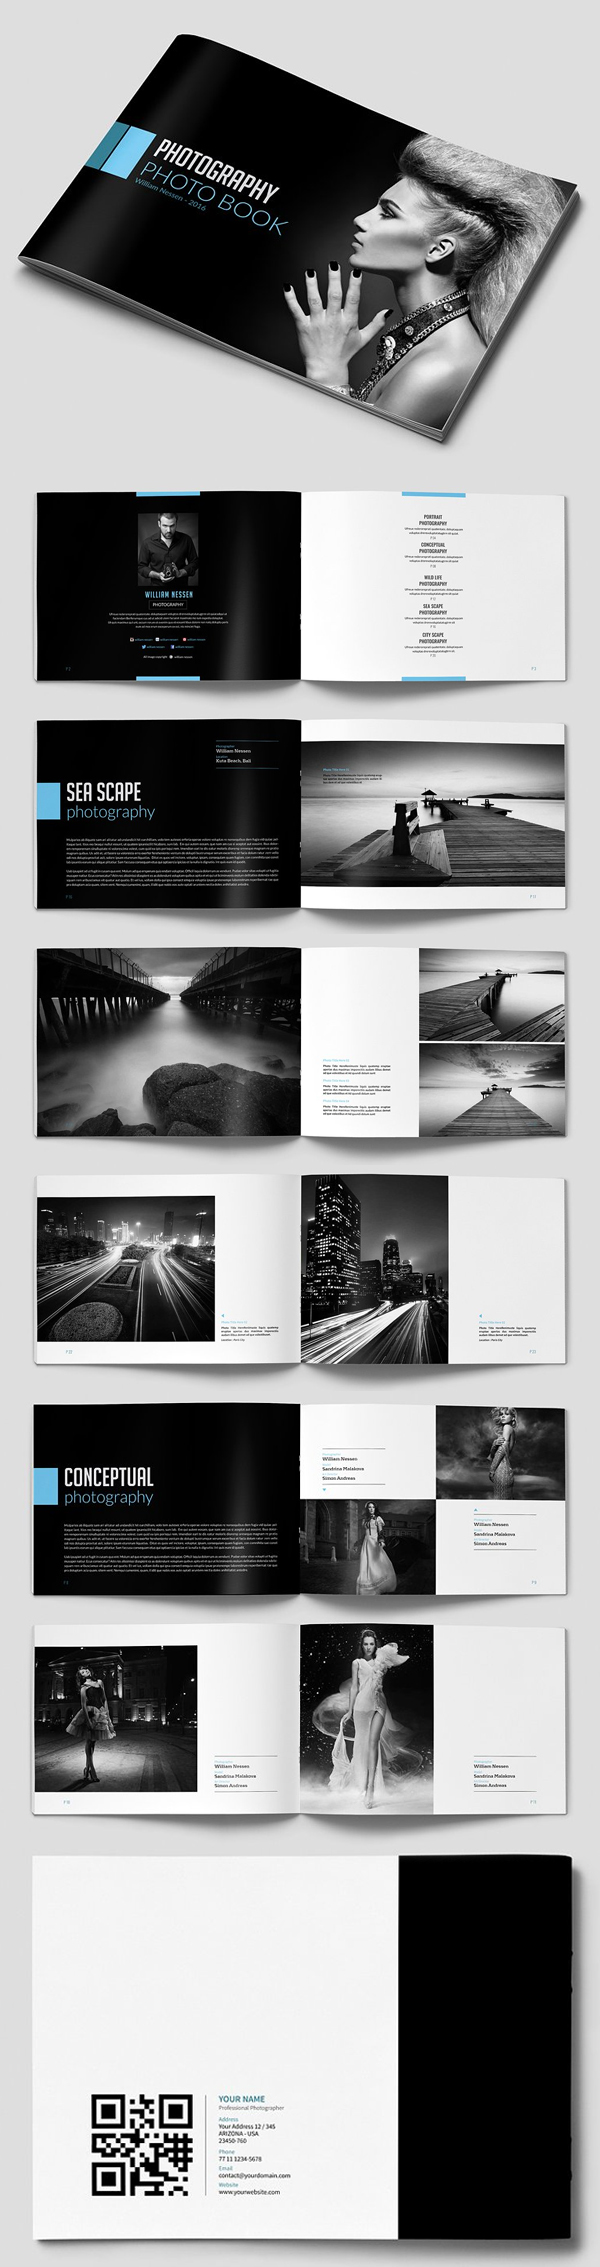 Minimal Photography Brochure Template